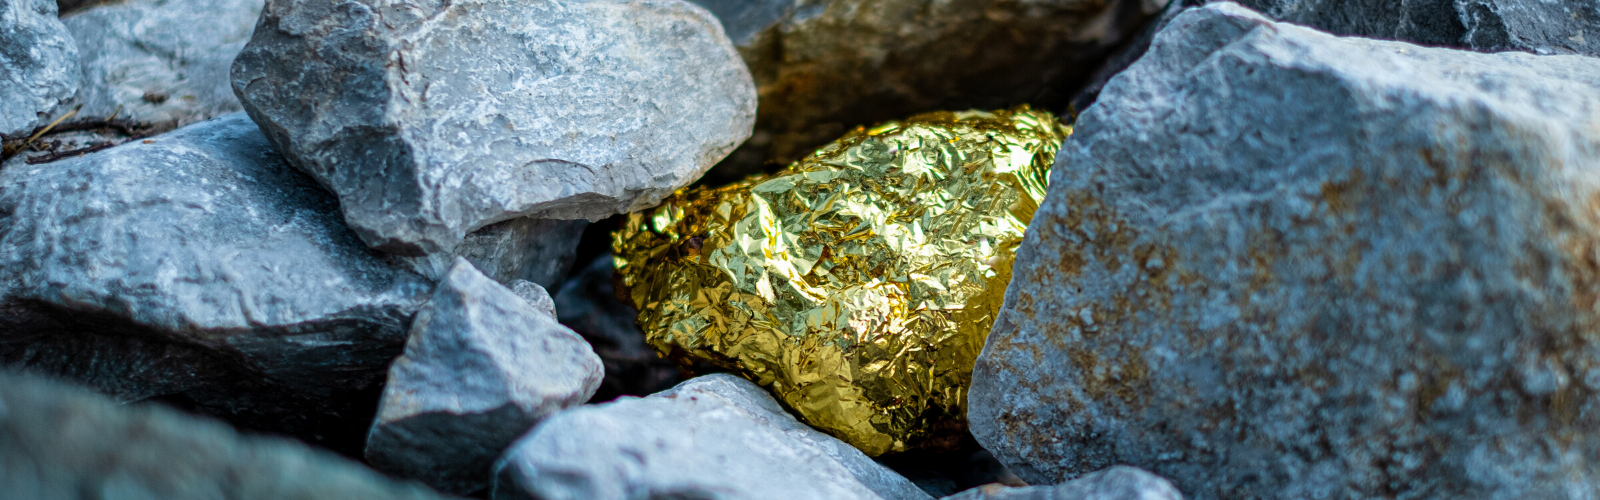 A gold nugget nestled and almost hidden in grey stones in a conflict minerals mine.